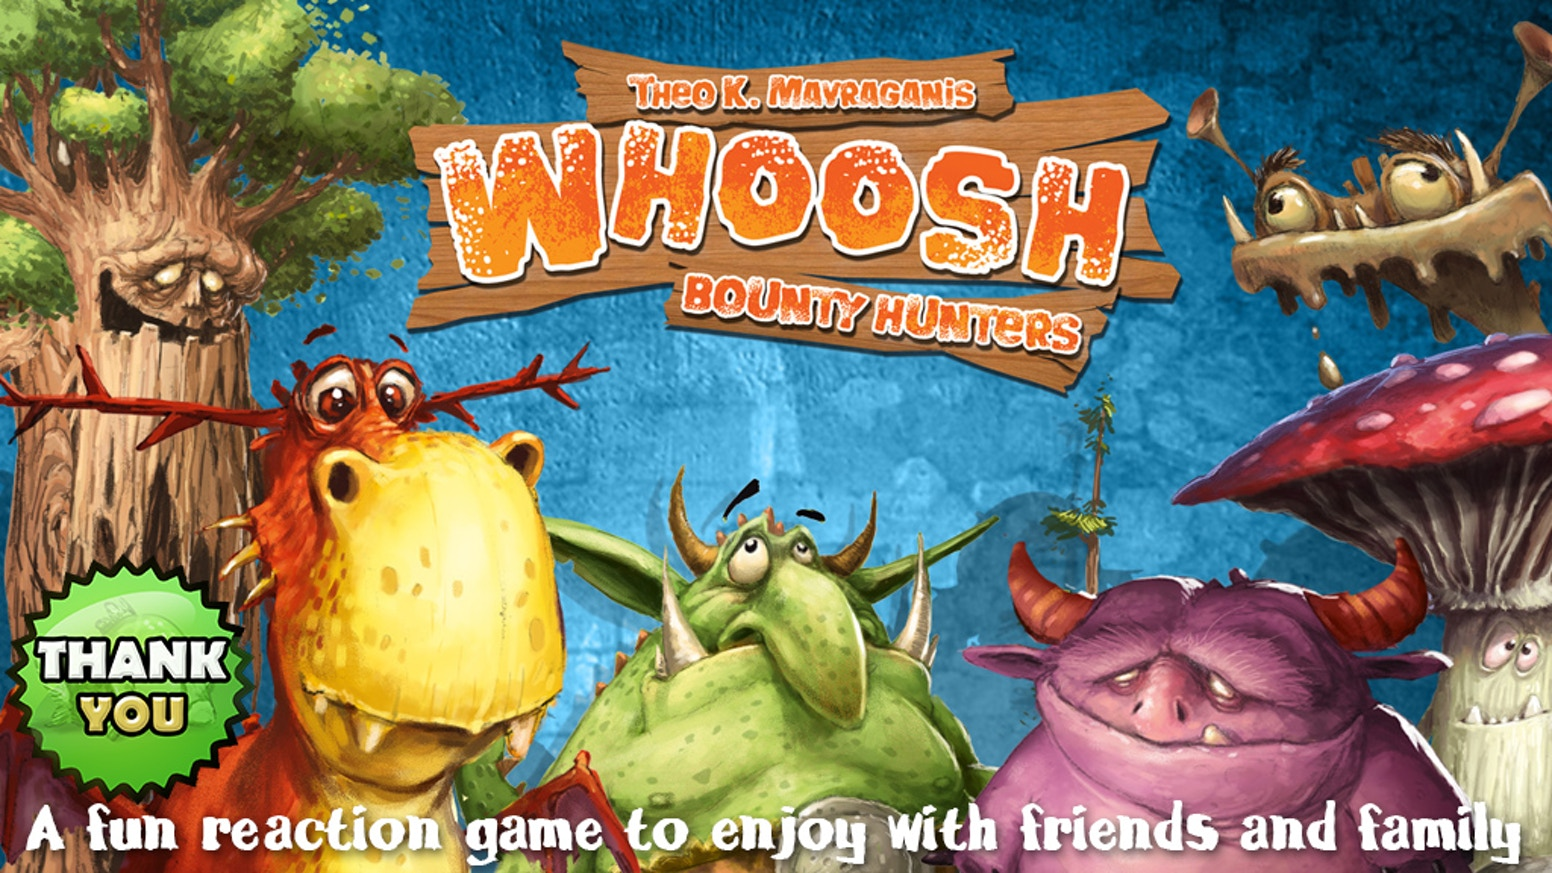 A fun reaction game about capturing cute monsters.